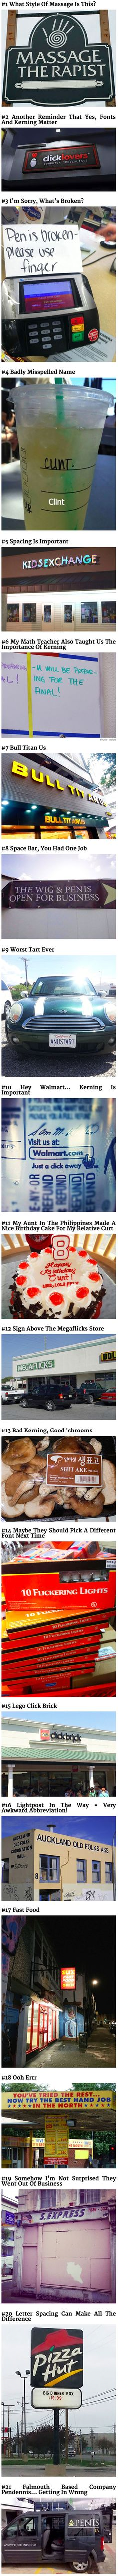 Here are 21 examples showing why letter spacing and fonts are important on signs.